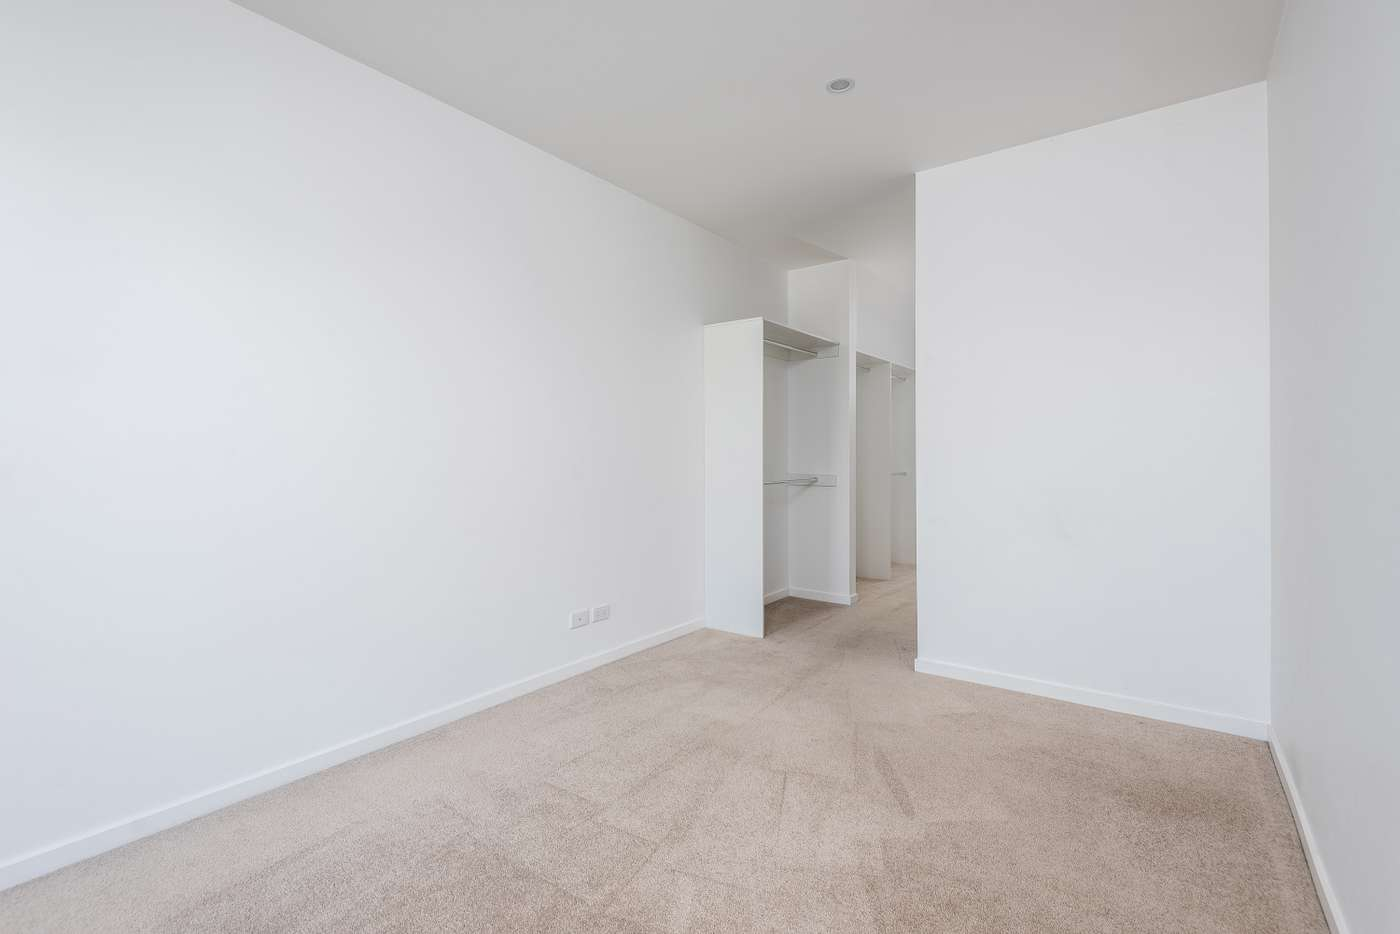 Seventh view of Homely apartment listing, 203/1193-1195 Nepean Highway, Highett VIC 3190